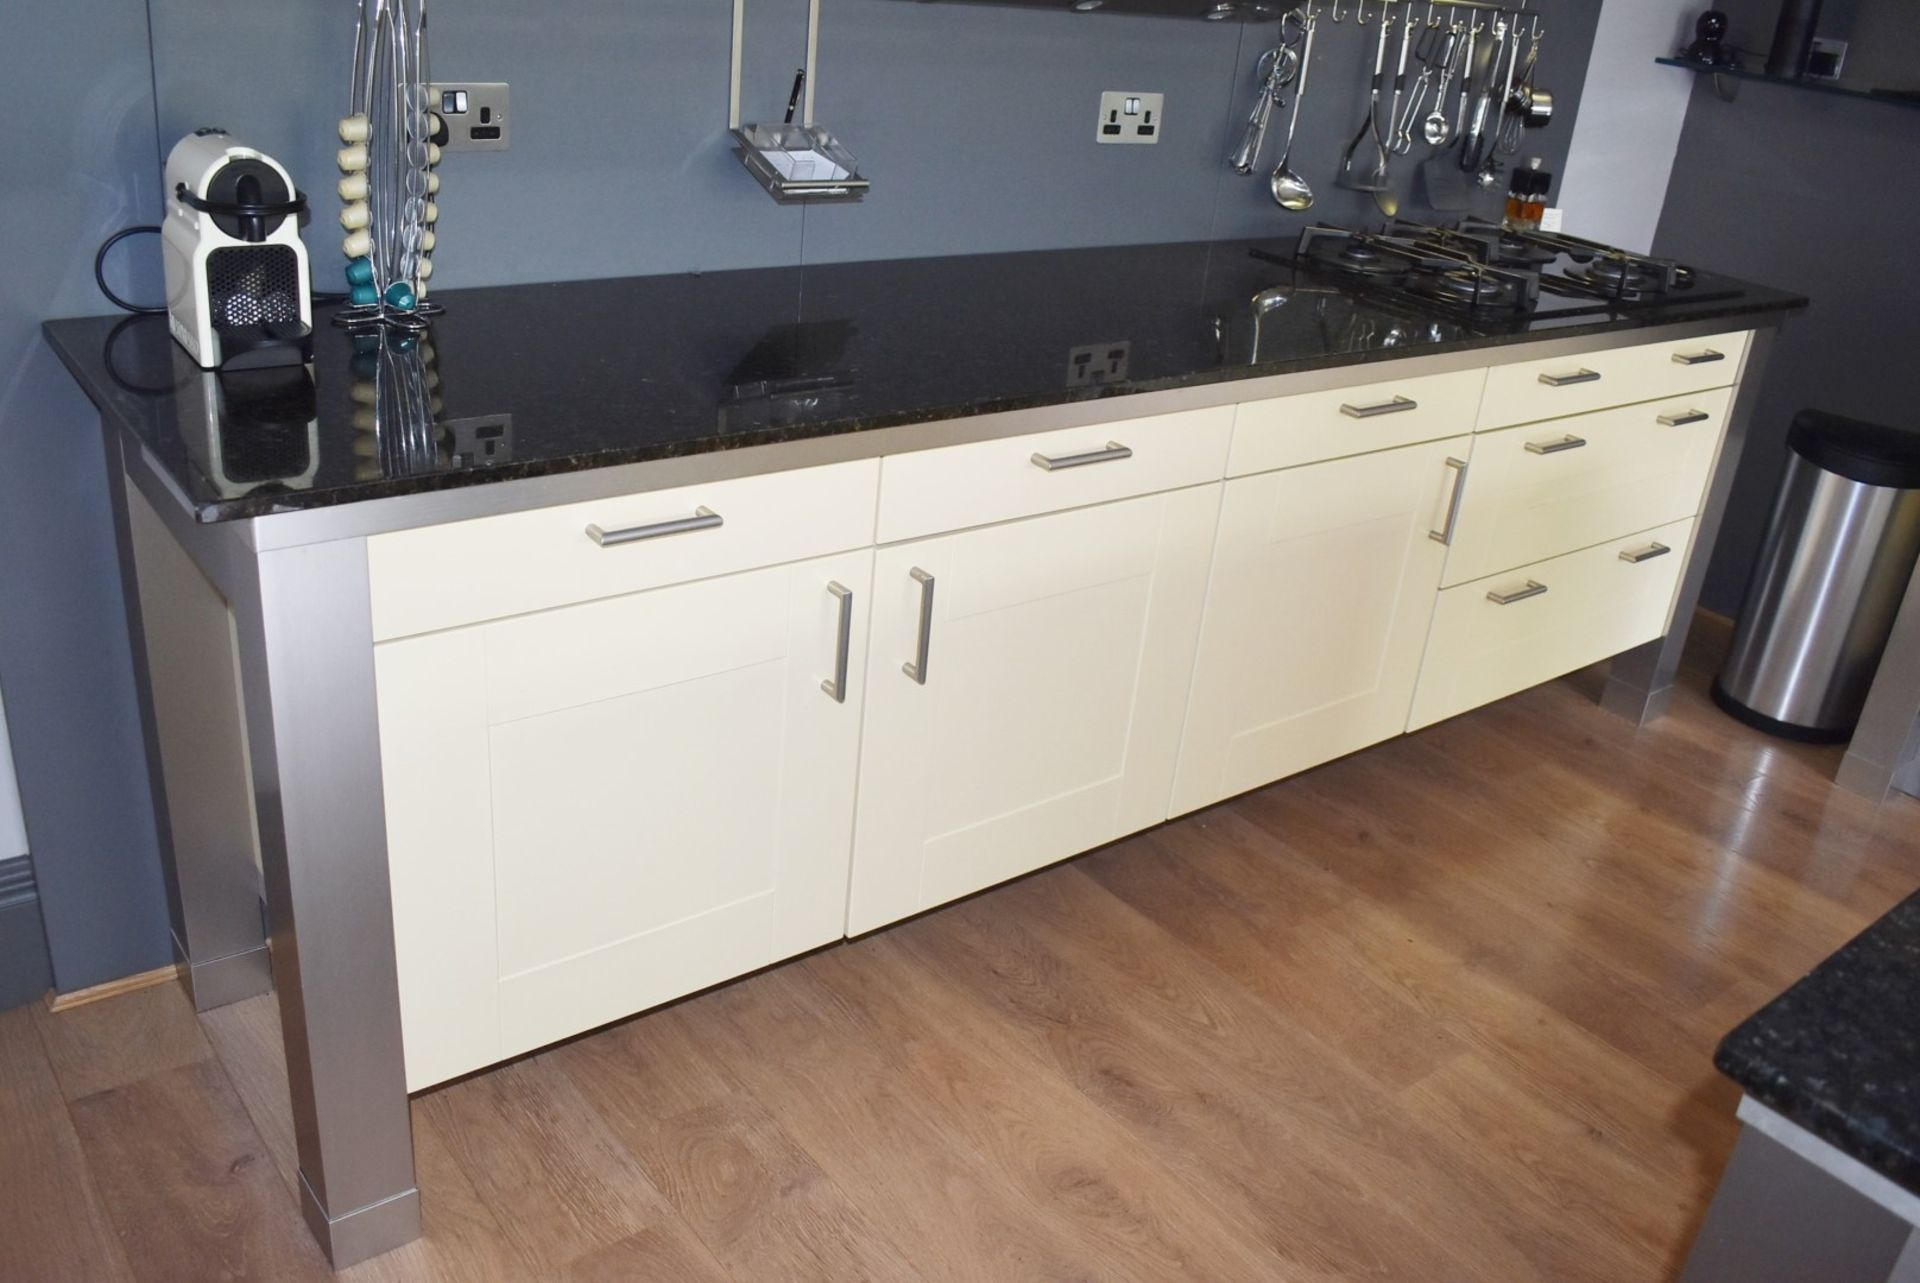 1 x SieMatic Contemporary Fitted Kitchen With Appliances - Features Shaker Style Doors, Central - Image 79 of 96